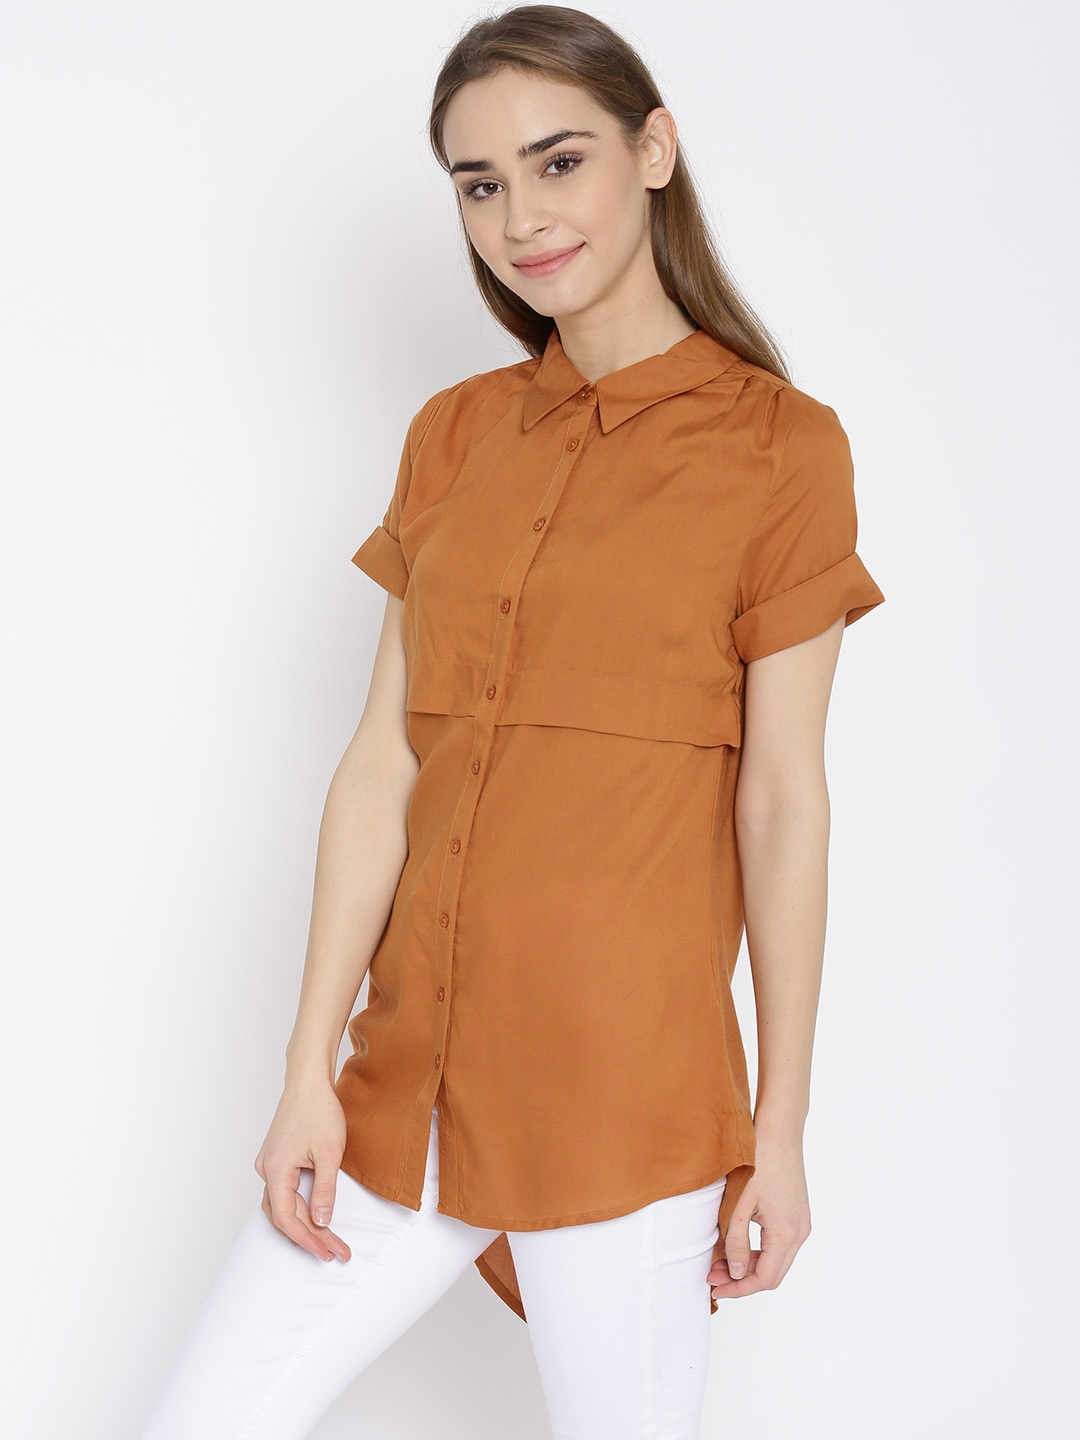 97c432e69e Buy Vero Moda Women Rust Orange Solid Layered Longline Casual Shirt ...